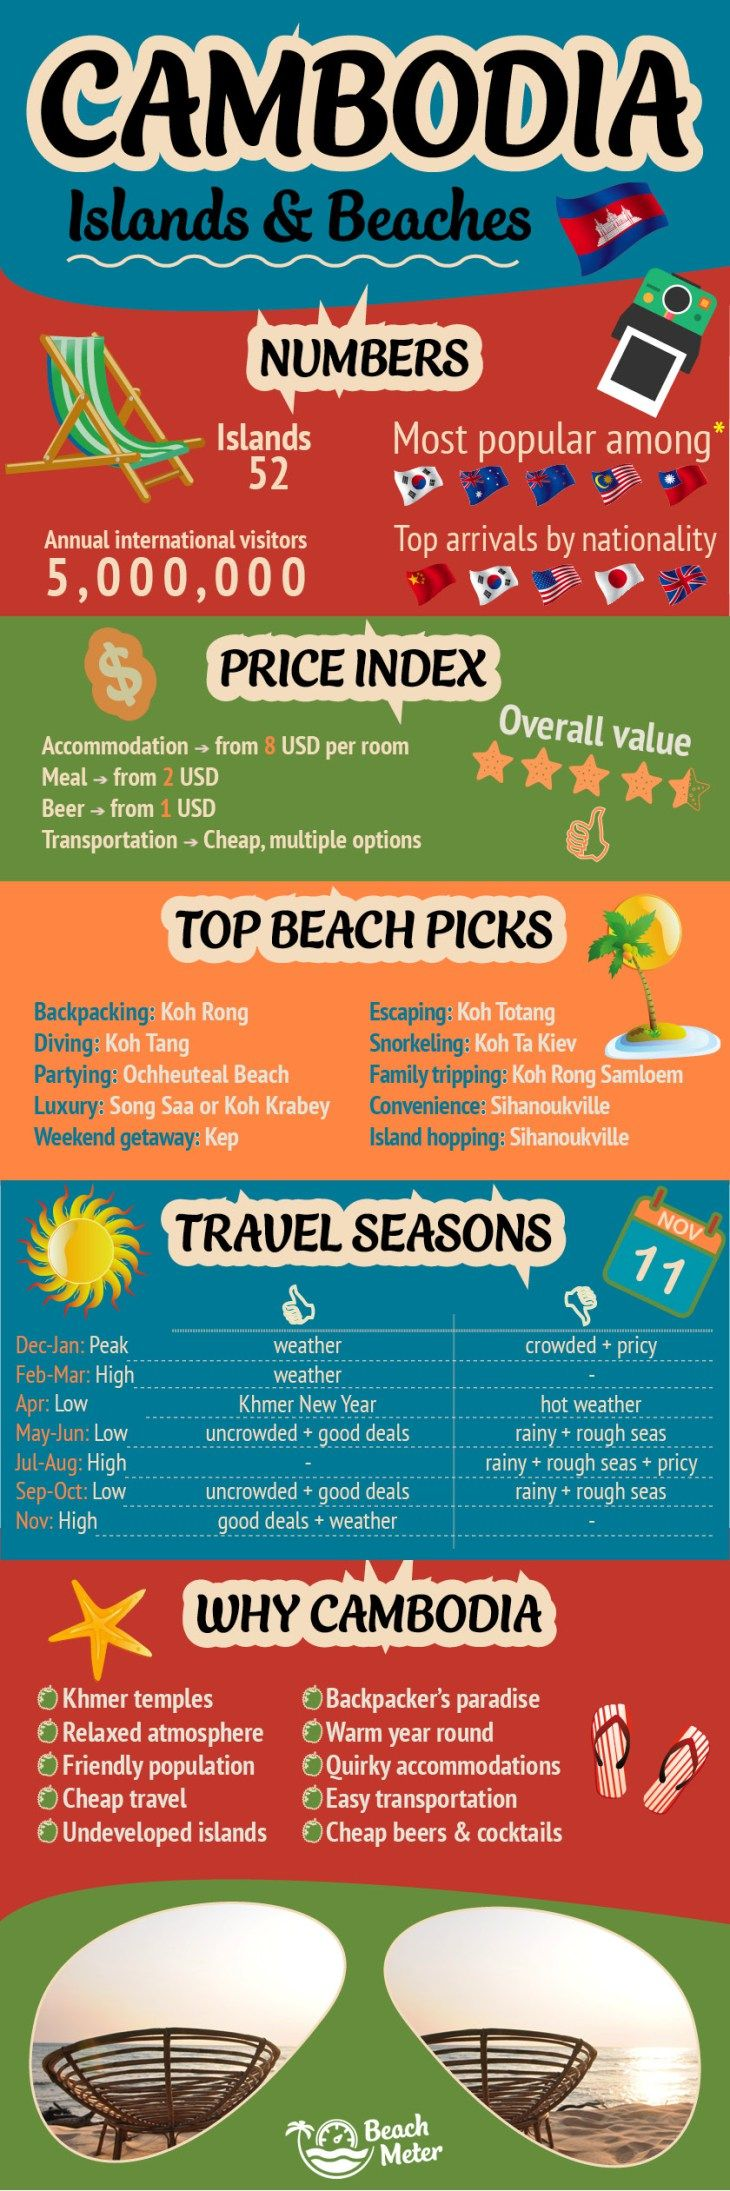 Cambodia Travel Infographic of Cambodia's Islands and beaches including tourism information, price index, best beaches, travel seasons, and Unique Selling Points for Cambodia.